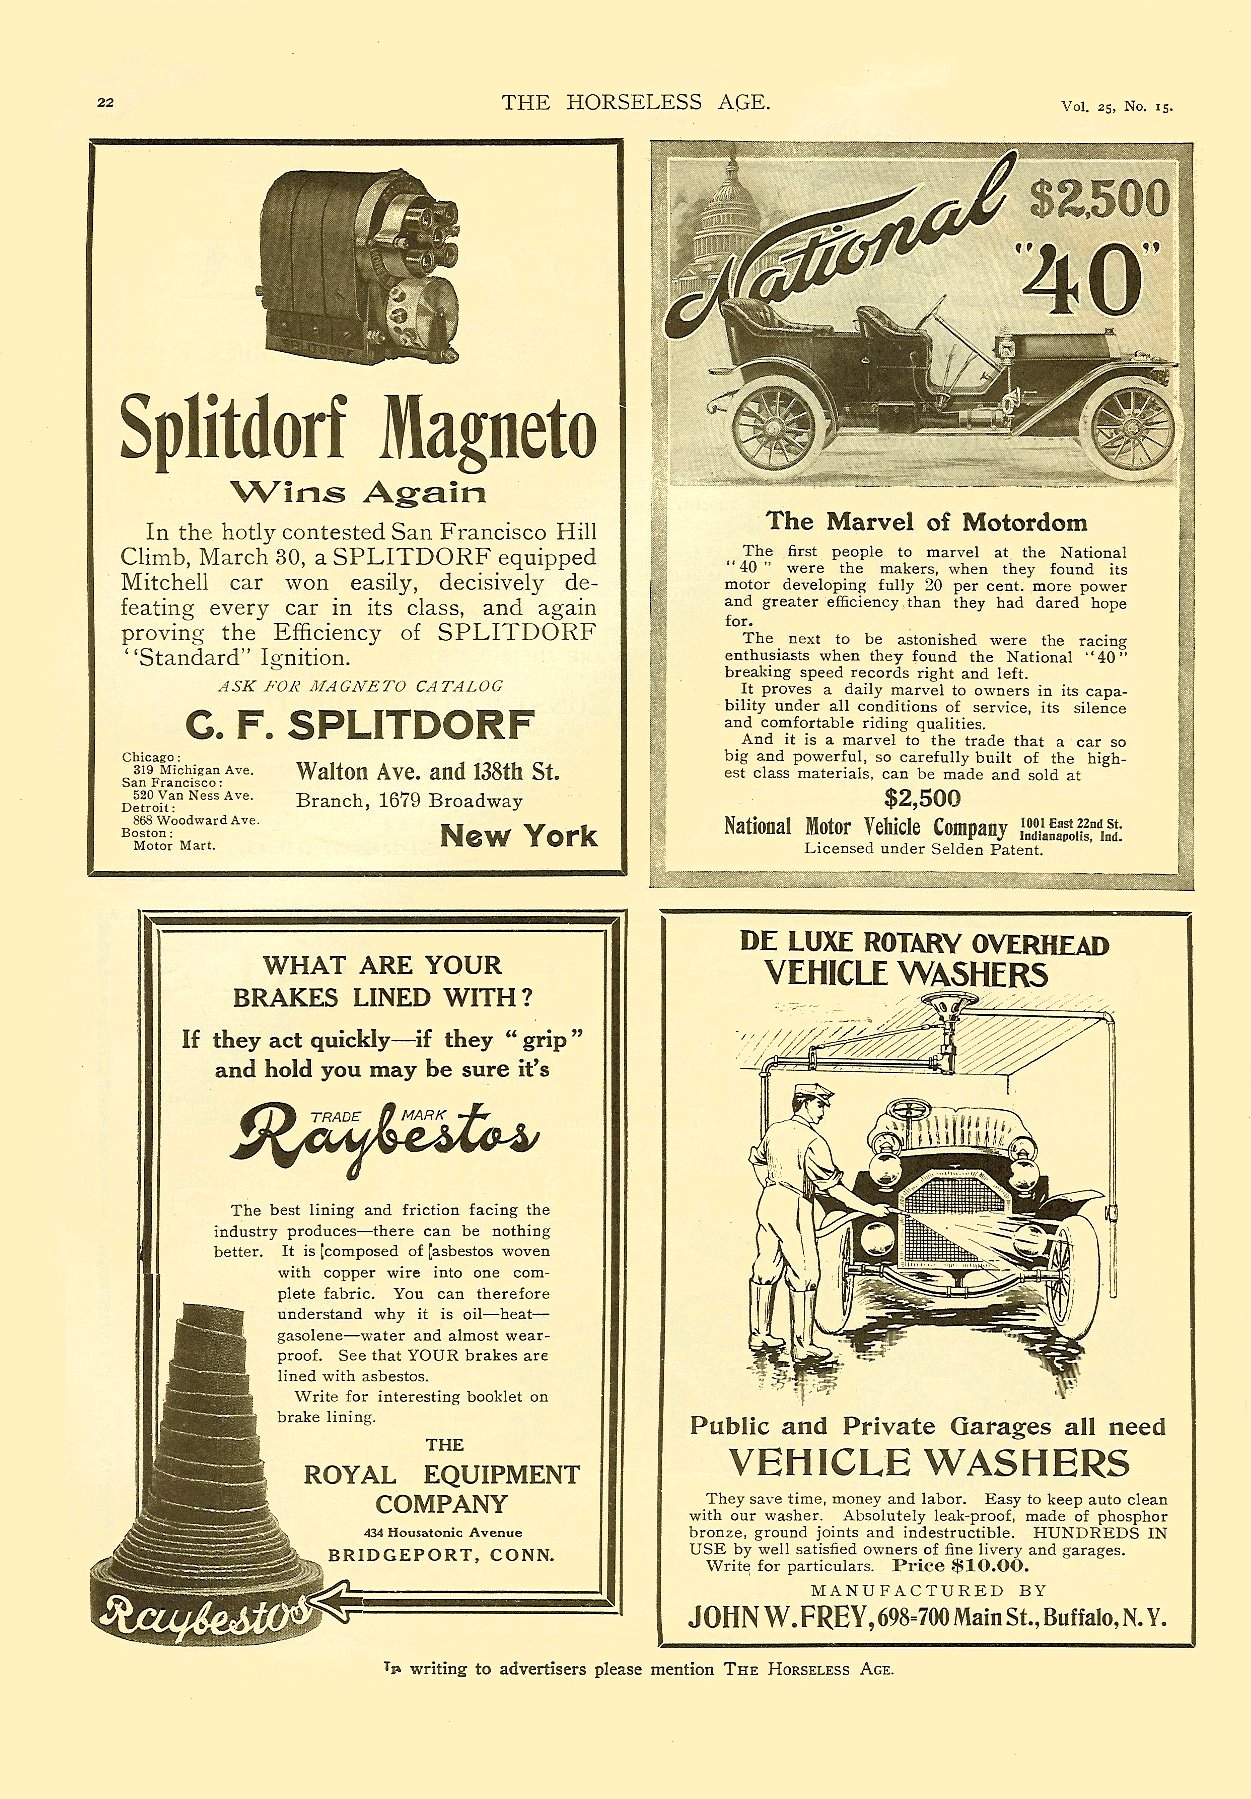 "1910 4 13 National ""40"" $2,500 The Marvel of Motordom THE HORSELESS AGE April 13, 1910 Vol. 25 No. 15 9″x12″ page 22"